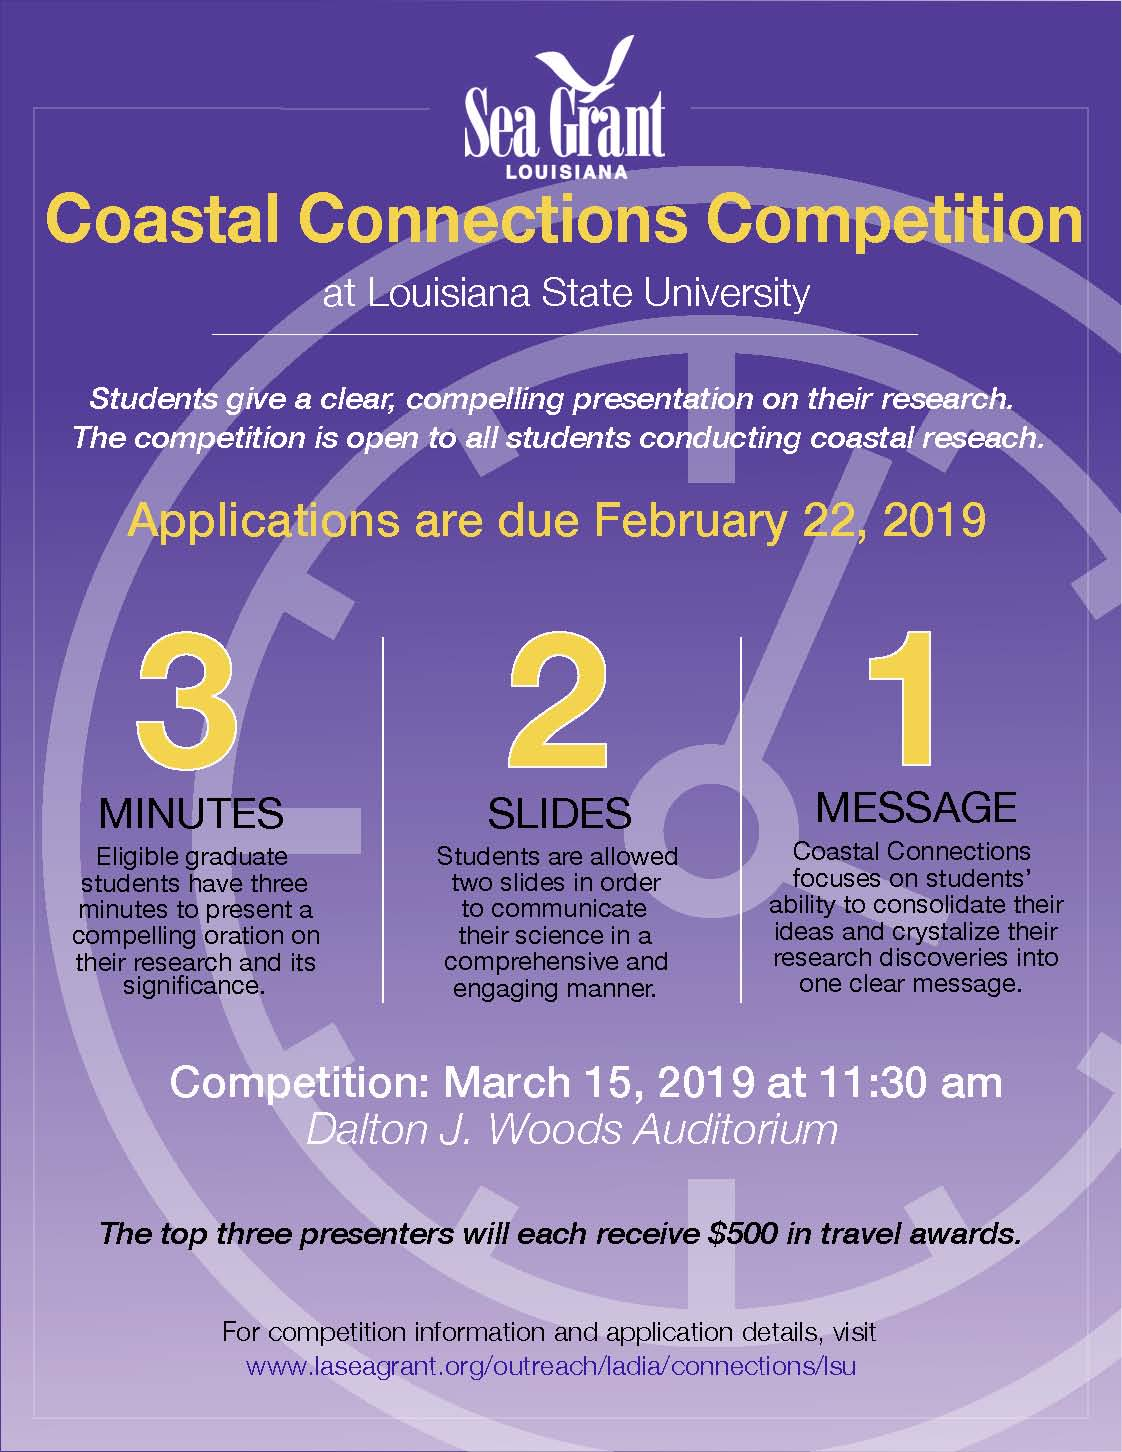 Coastal Connections Competition flyer